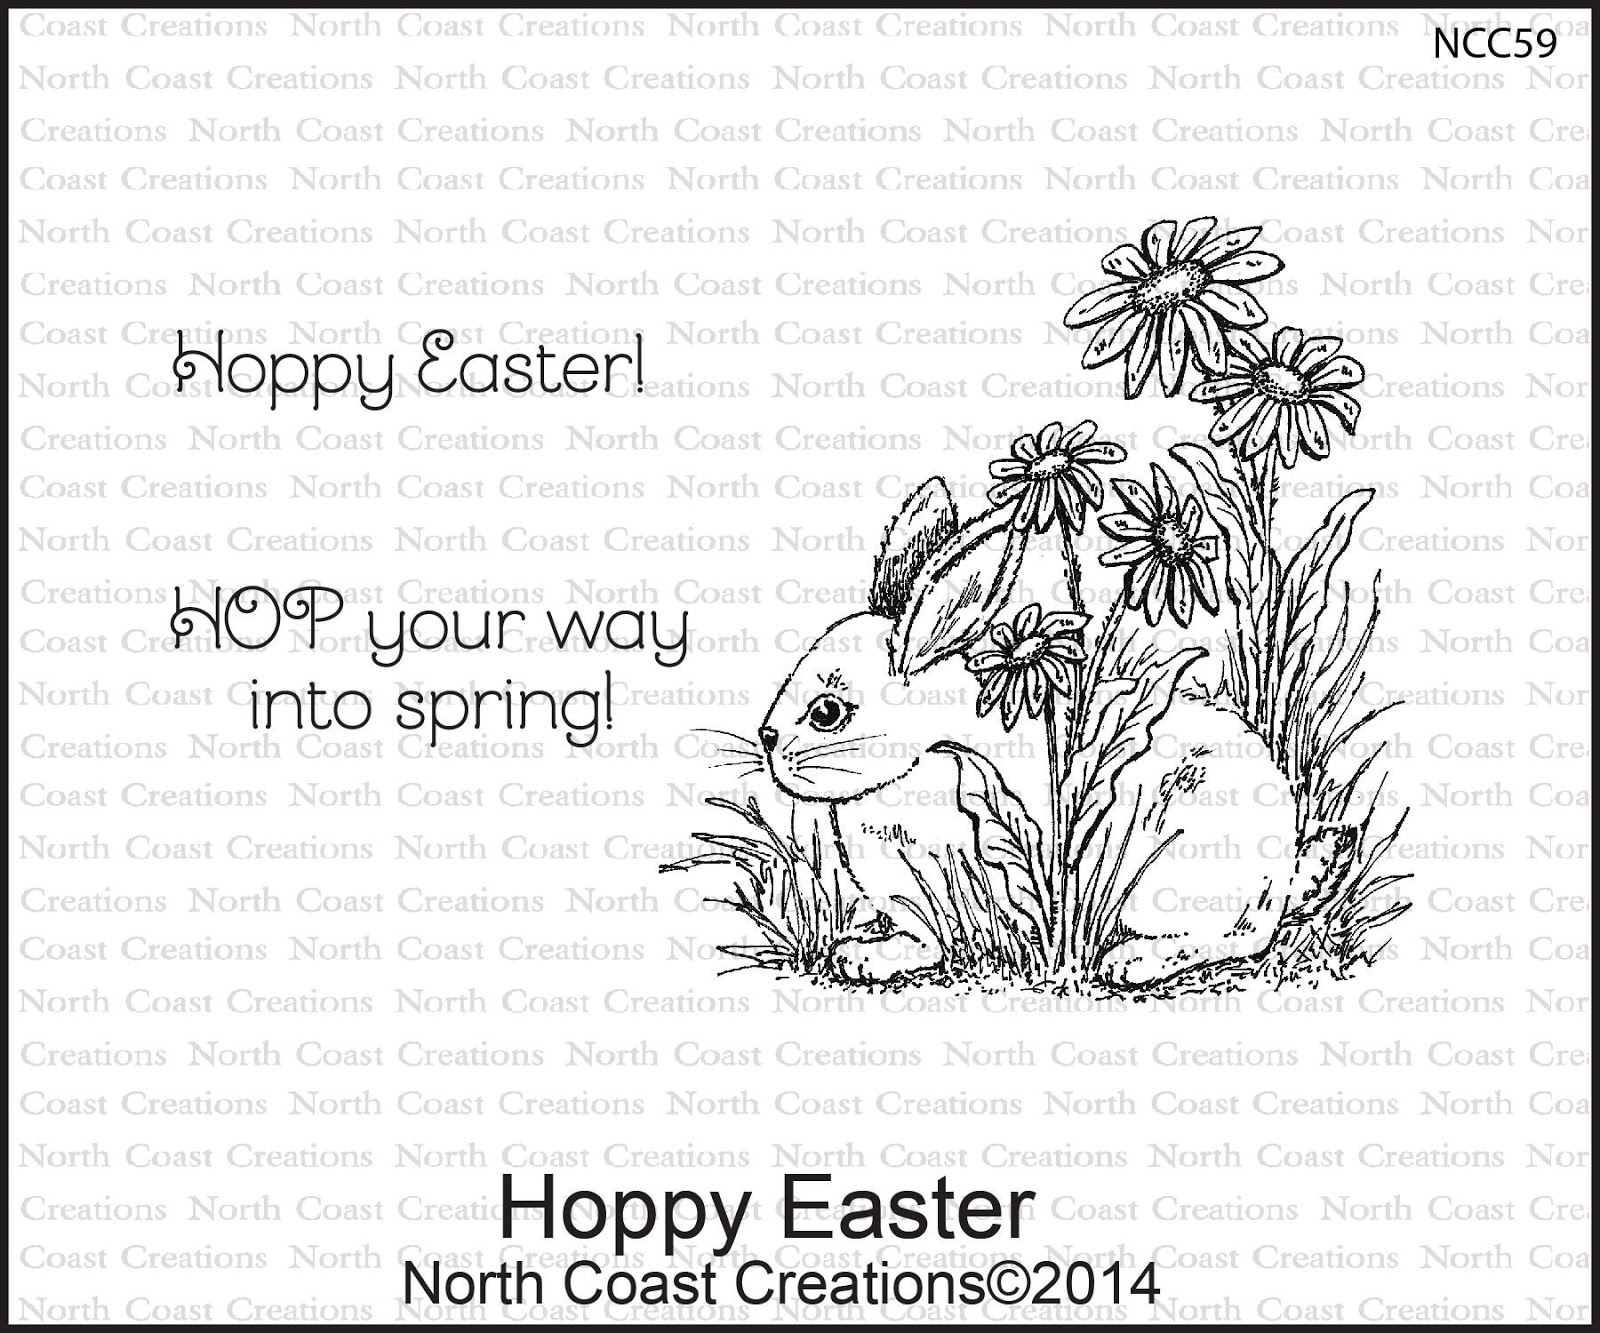 Stamps - North Coast Creations Hoppy Easter